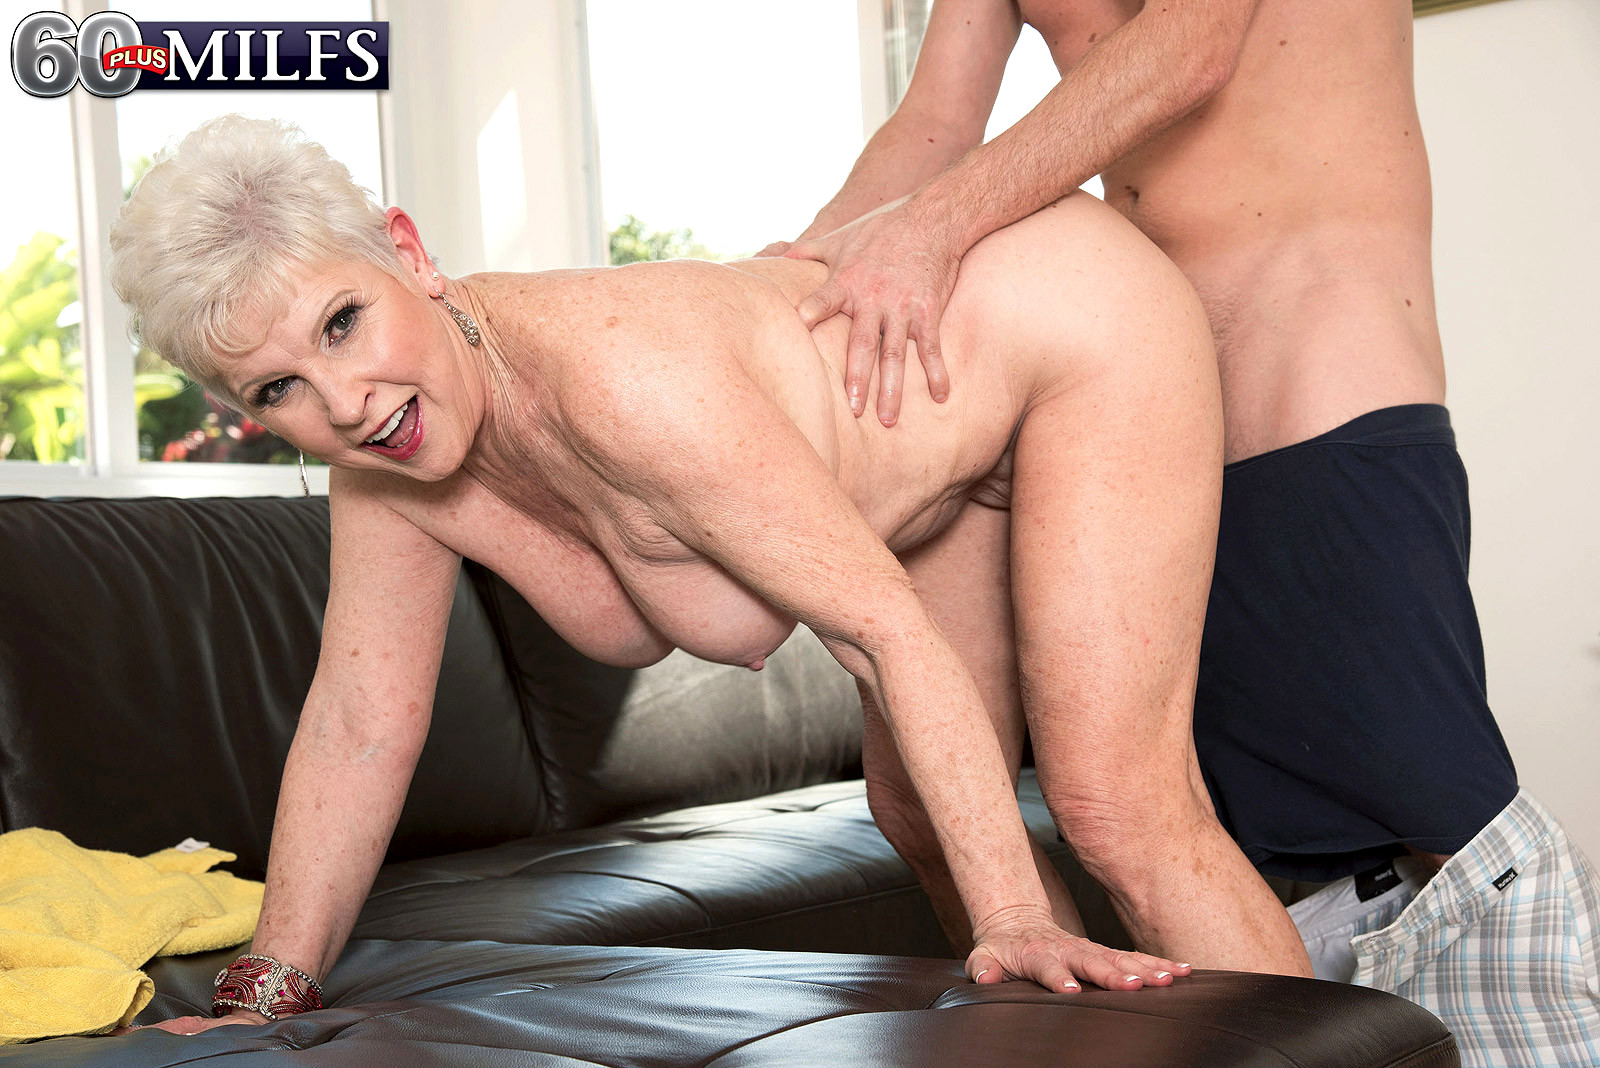 Grandma and a horny young guy having sex